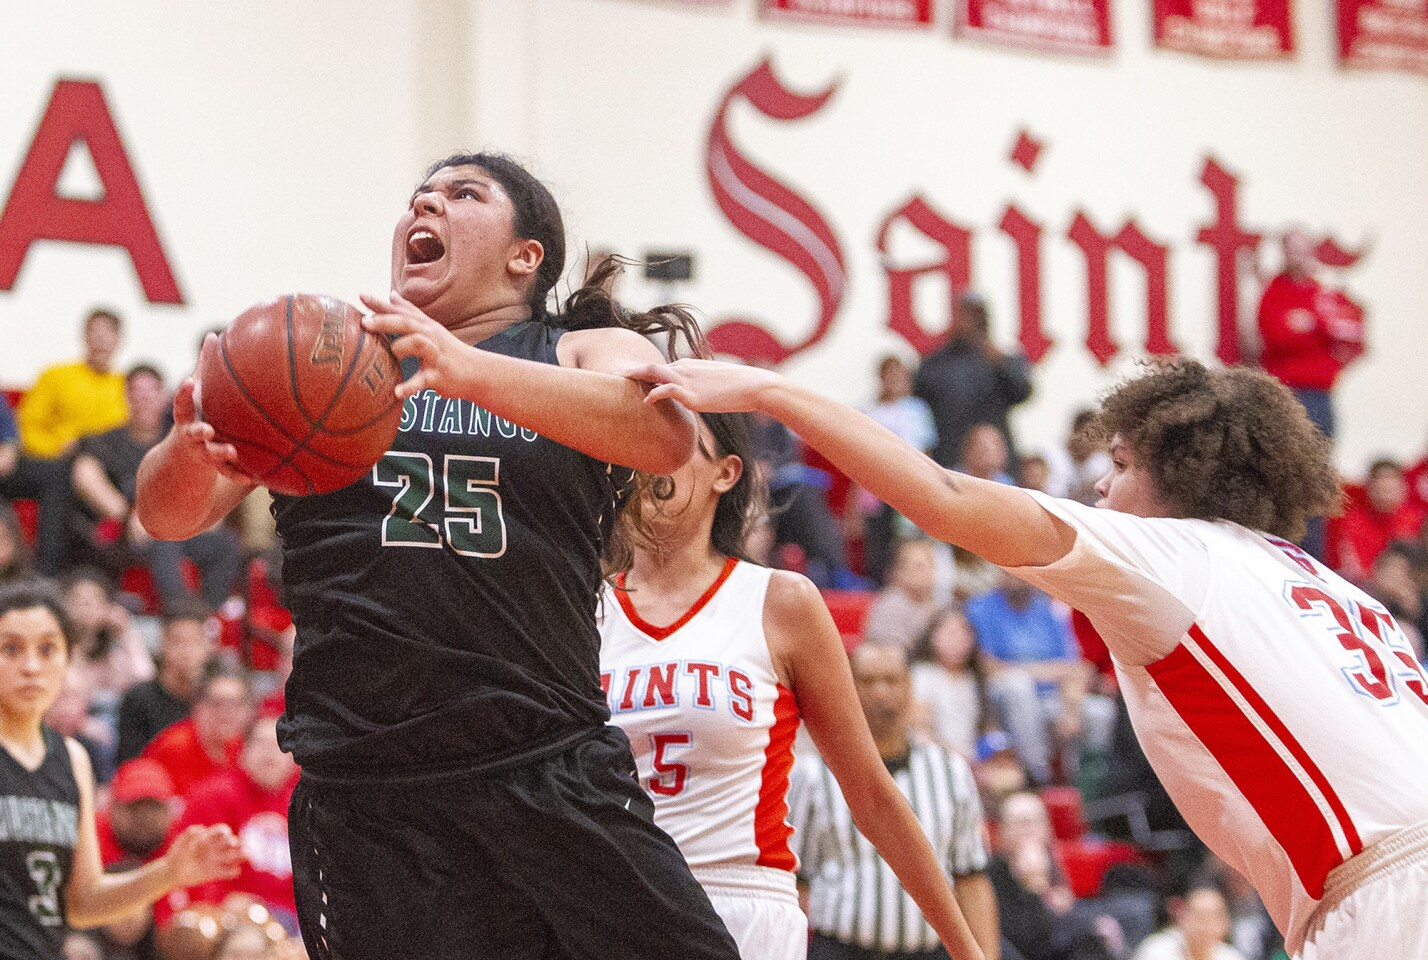 Photo Gallery: Costa Mesa vs. Santa Ana in girls' basketball